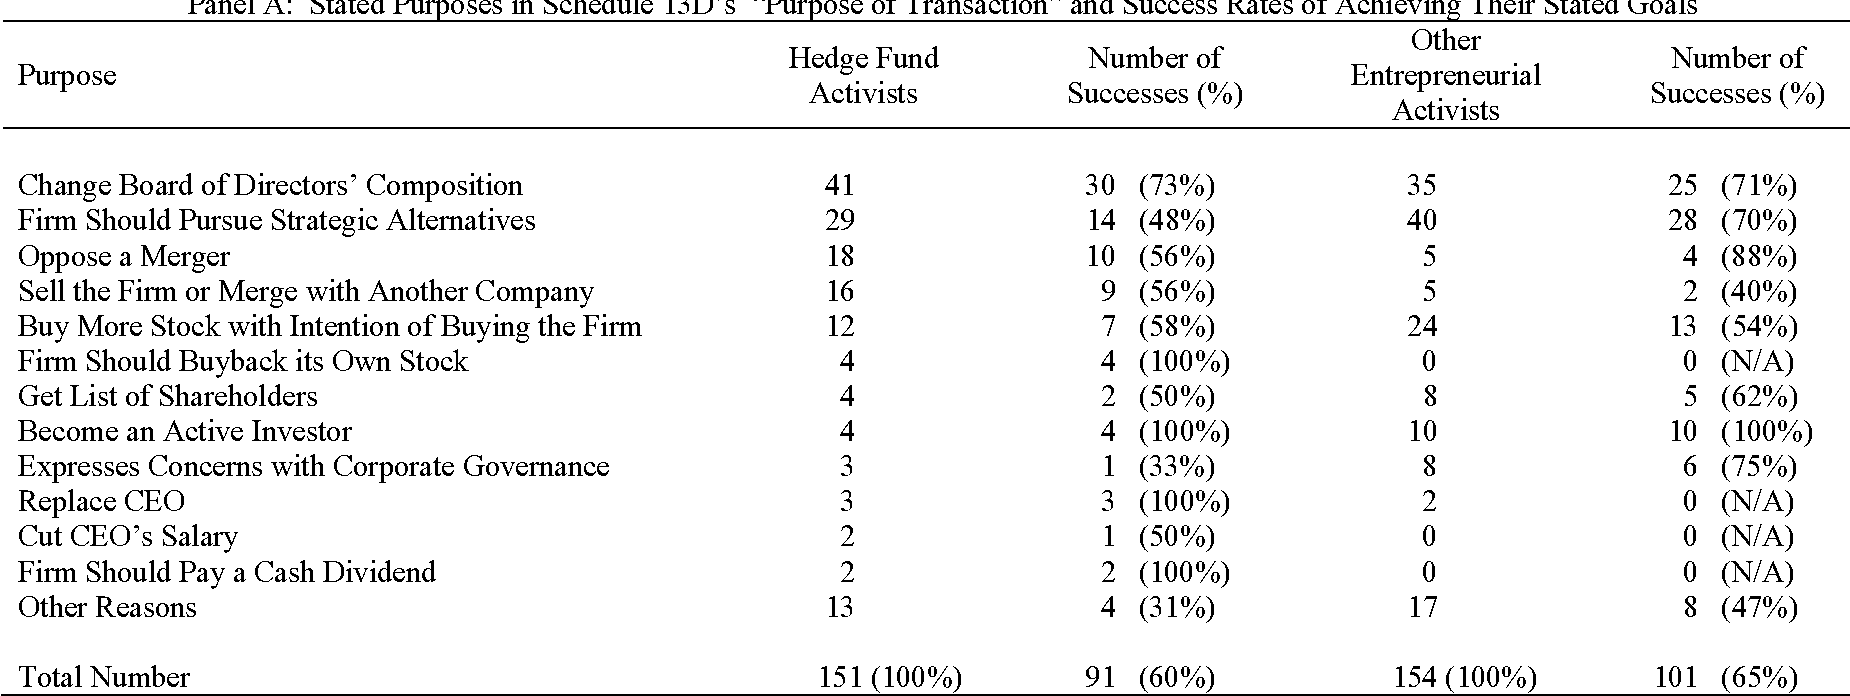 Table VI from Entrepreneurial Shareholder Activism : Hedge Funds and